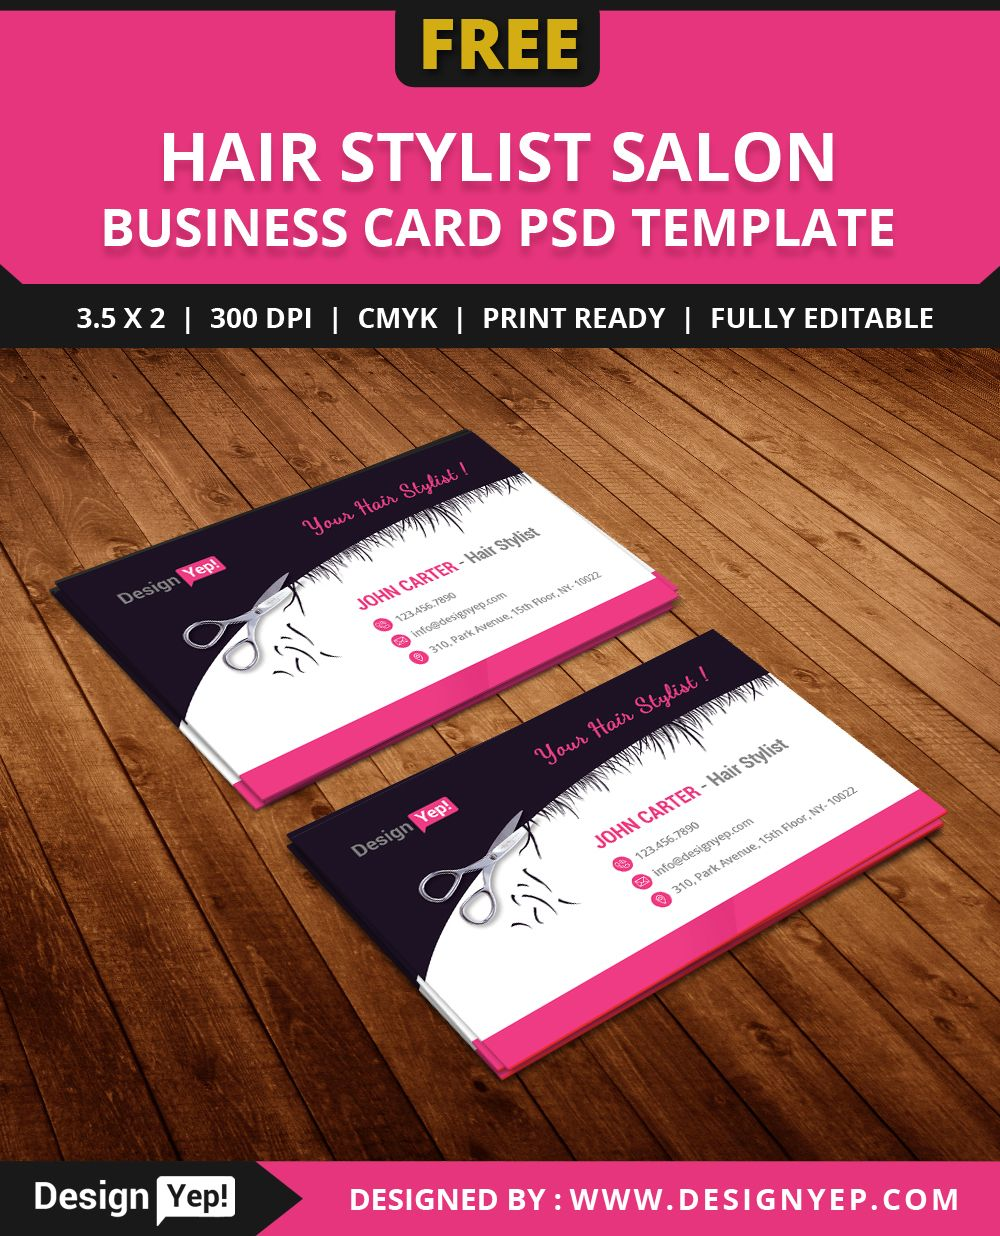 Free hair stylist salon business card template psd free business free hair stylist salon business card template psd wajeb Choice Image